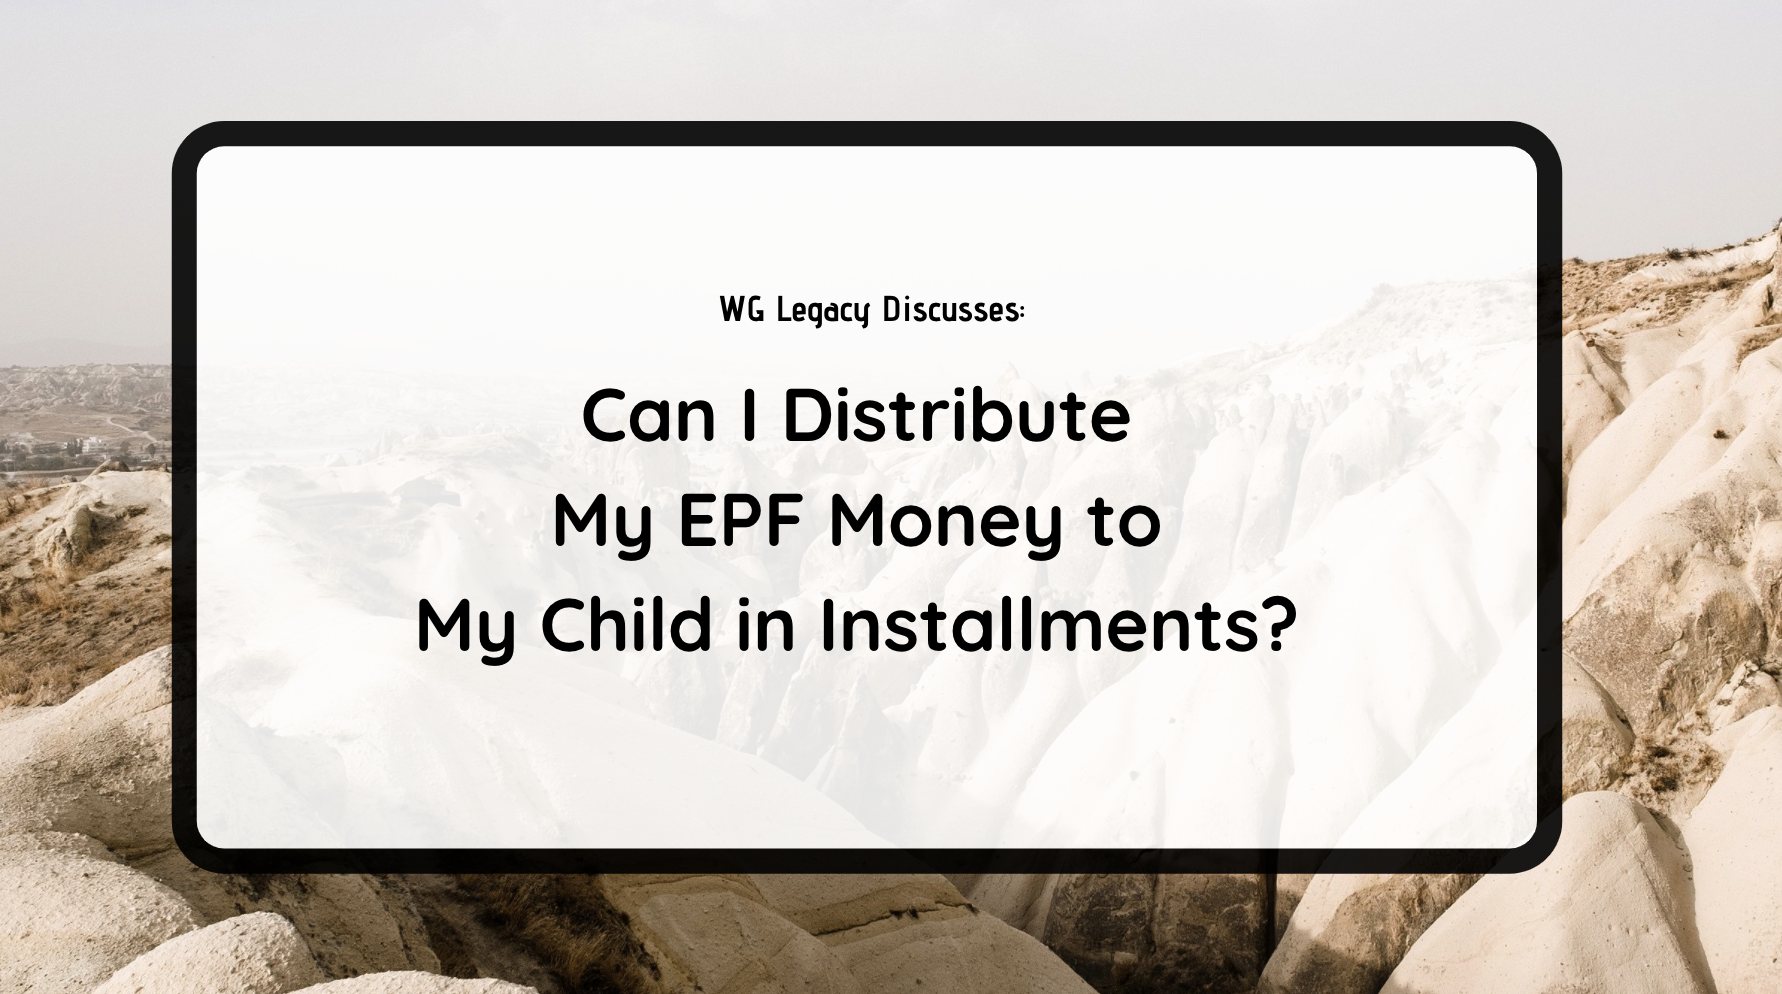 Can I Distribute My EPF Money to My Child in Installments?